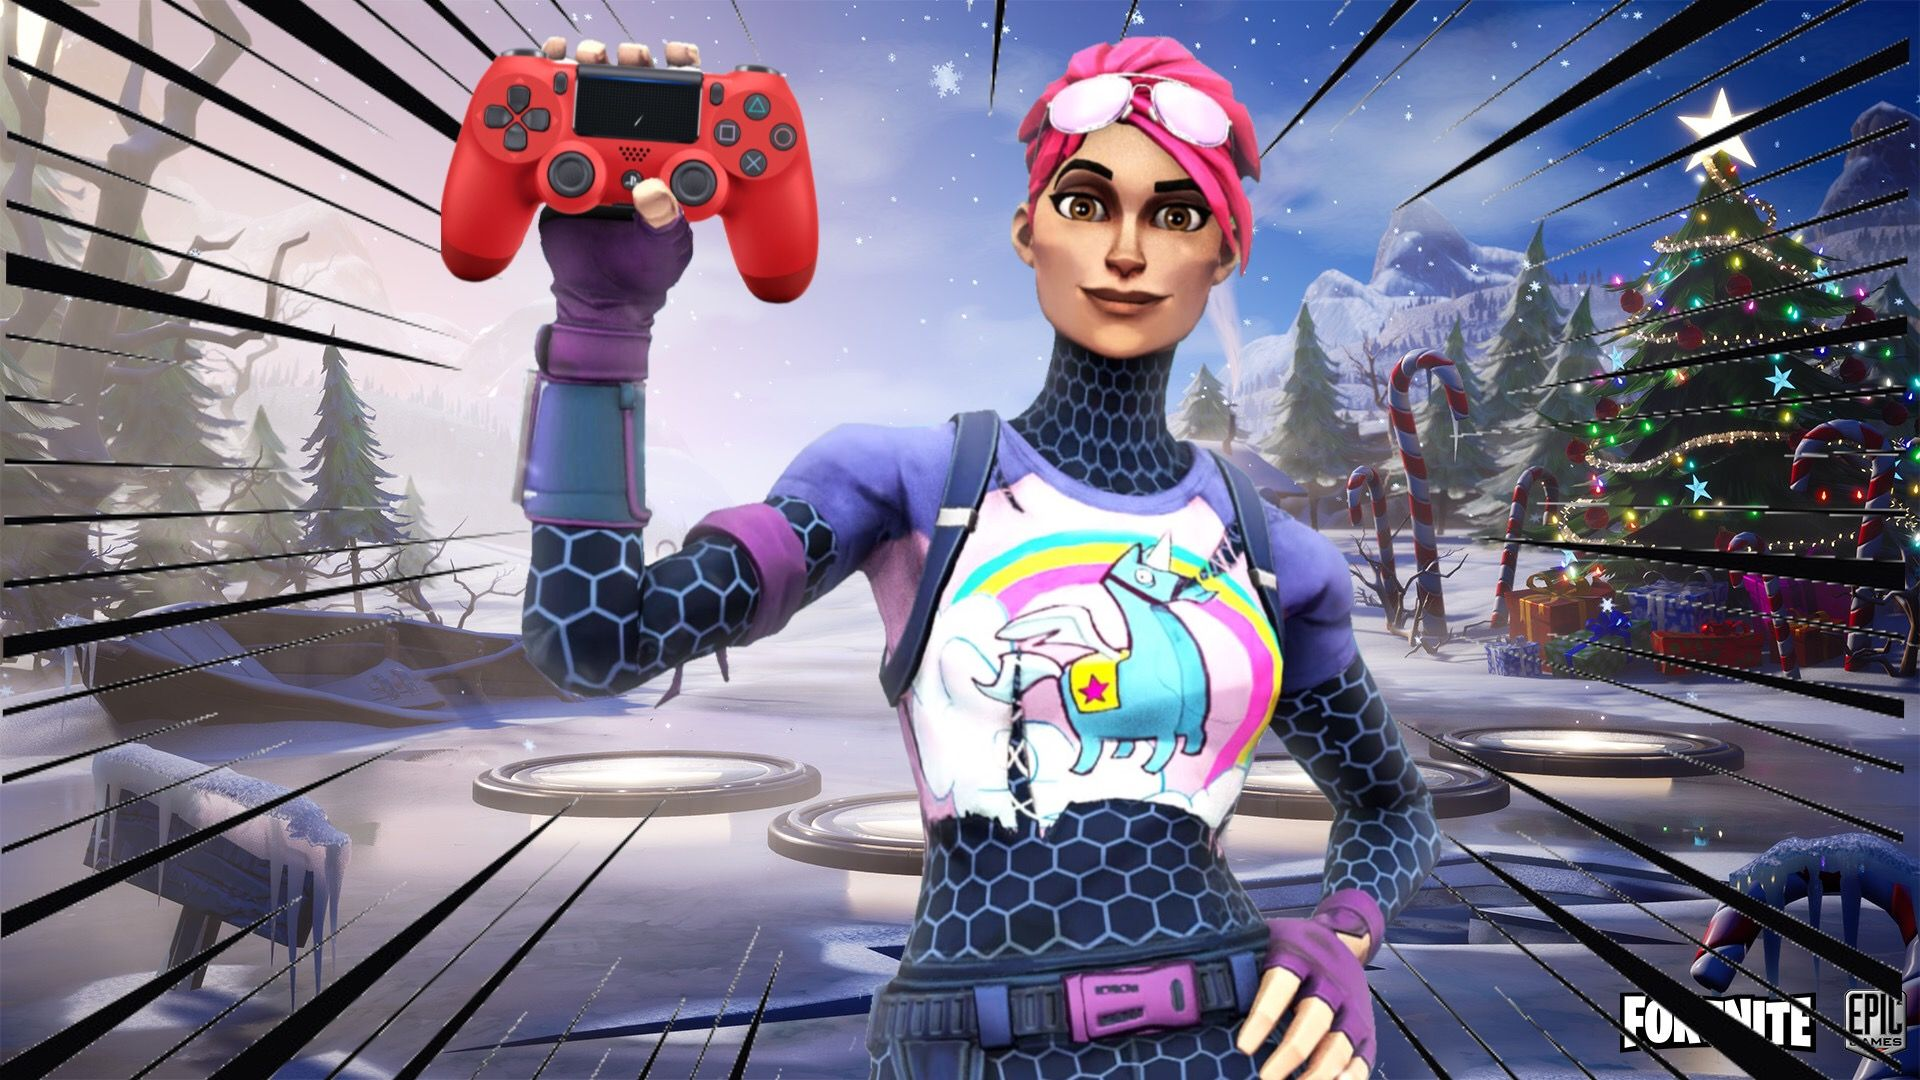 freetoedit #ps4 #fortnite #thumbnail #remixed from @sxtch